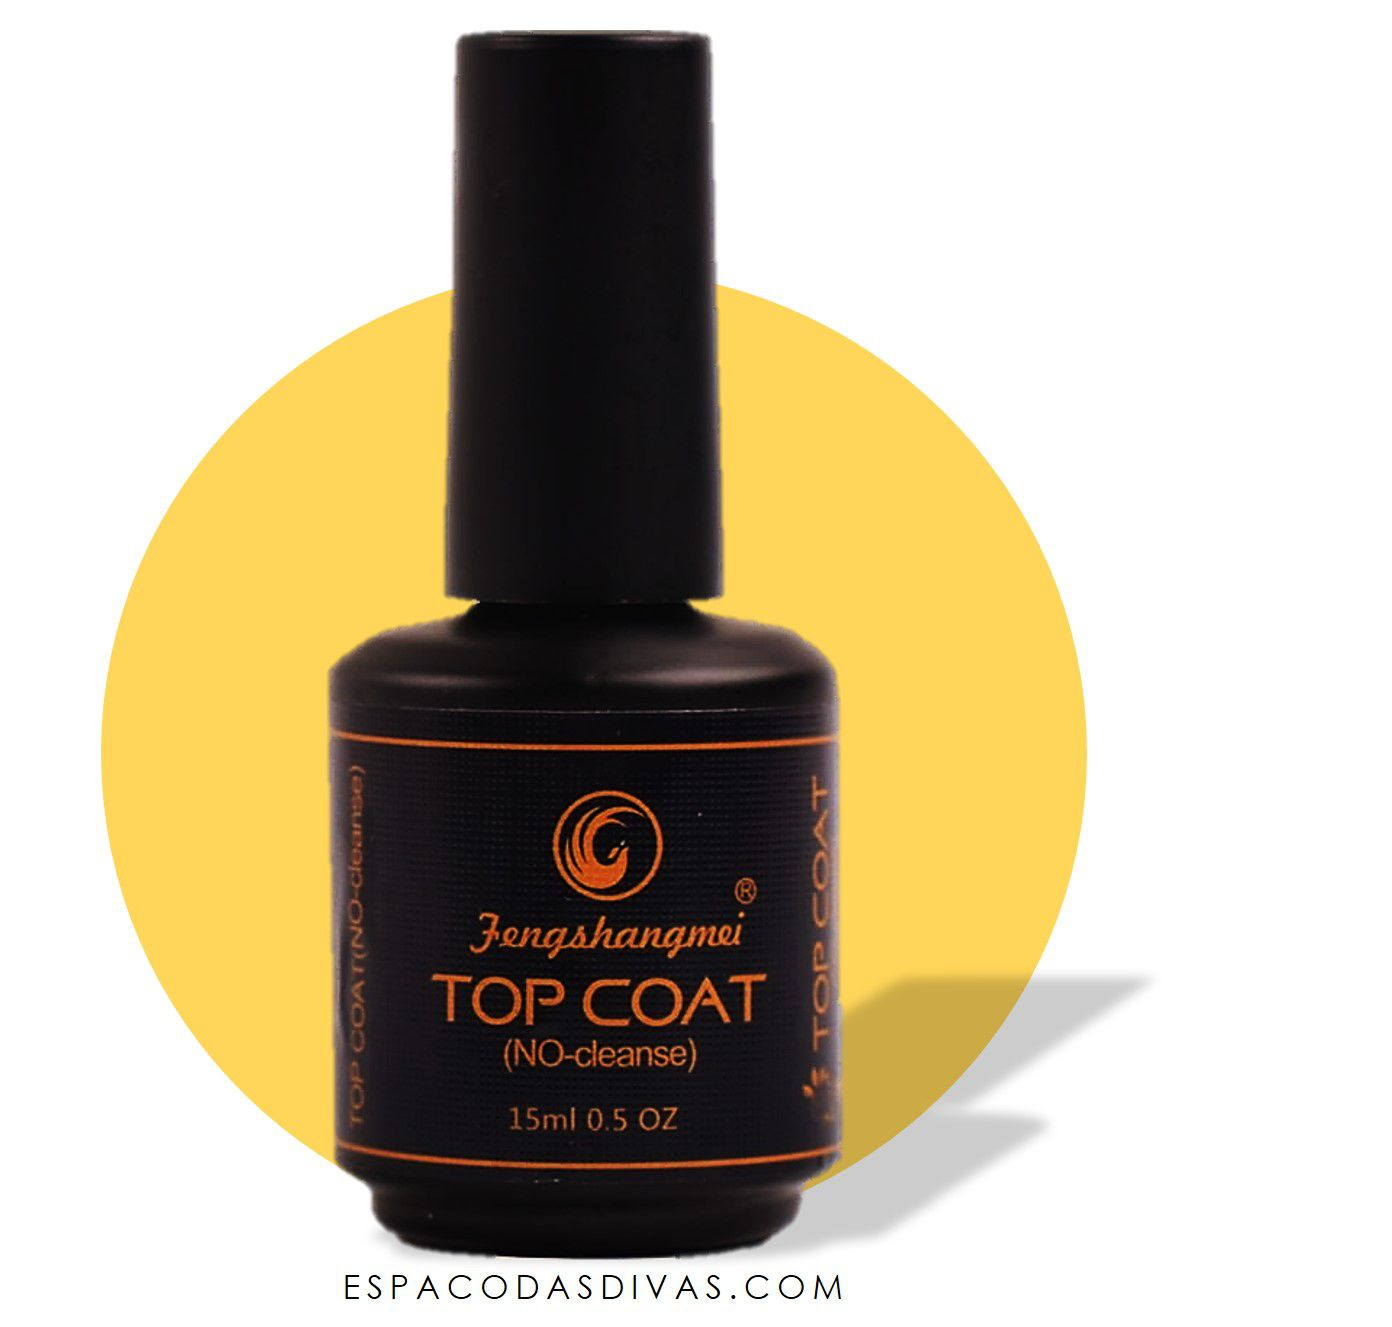 Top Coat Fengshangmei 15ml - Pretinho do Poder